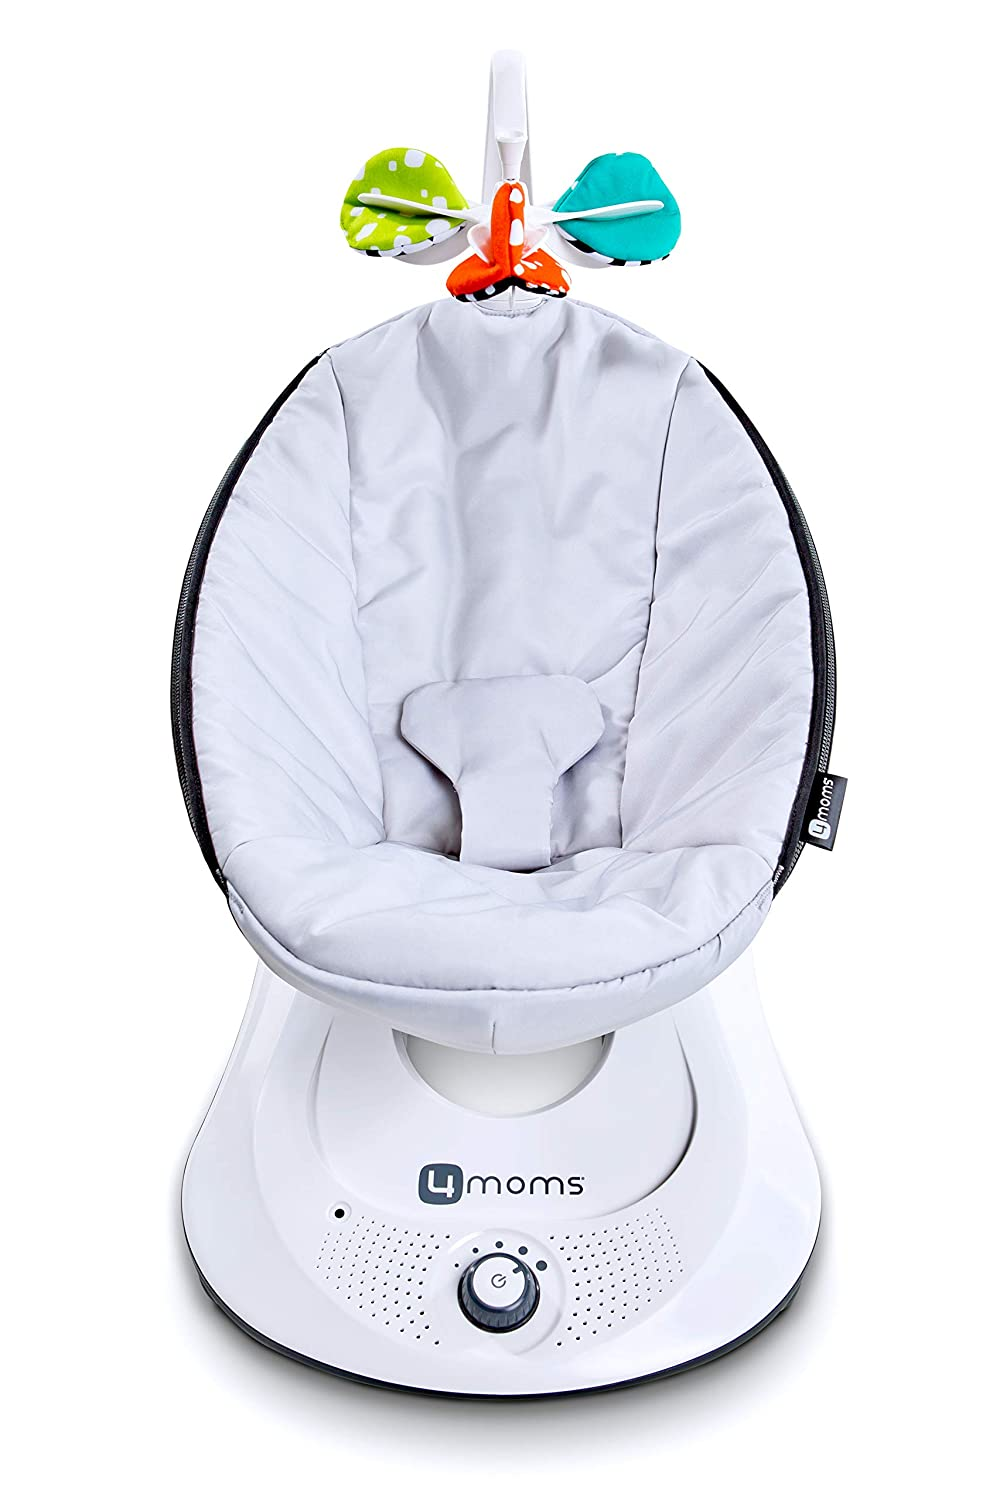 Image result for 4moms mamaRoo Swing